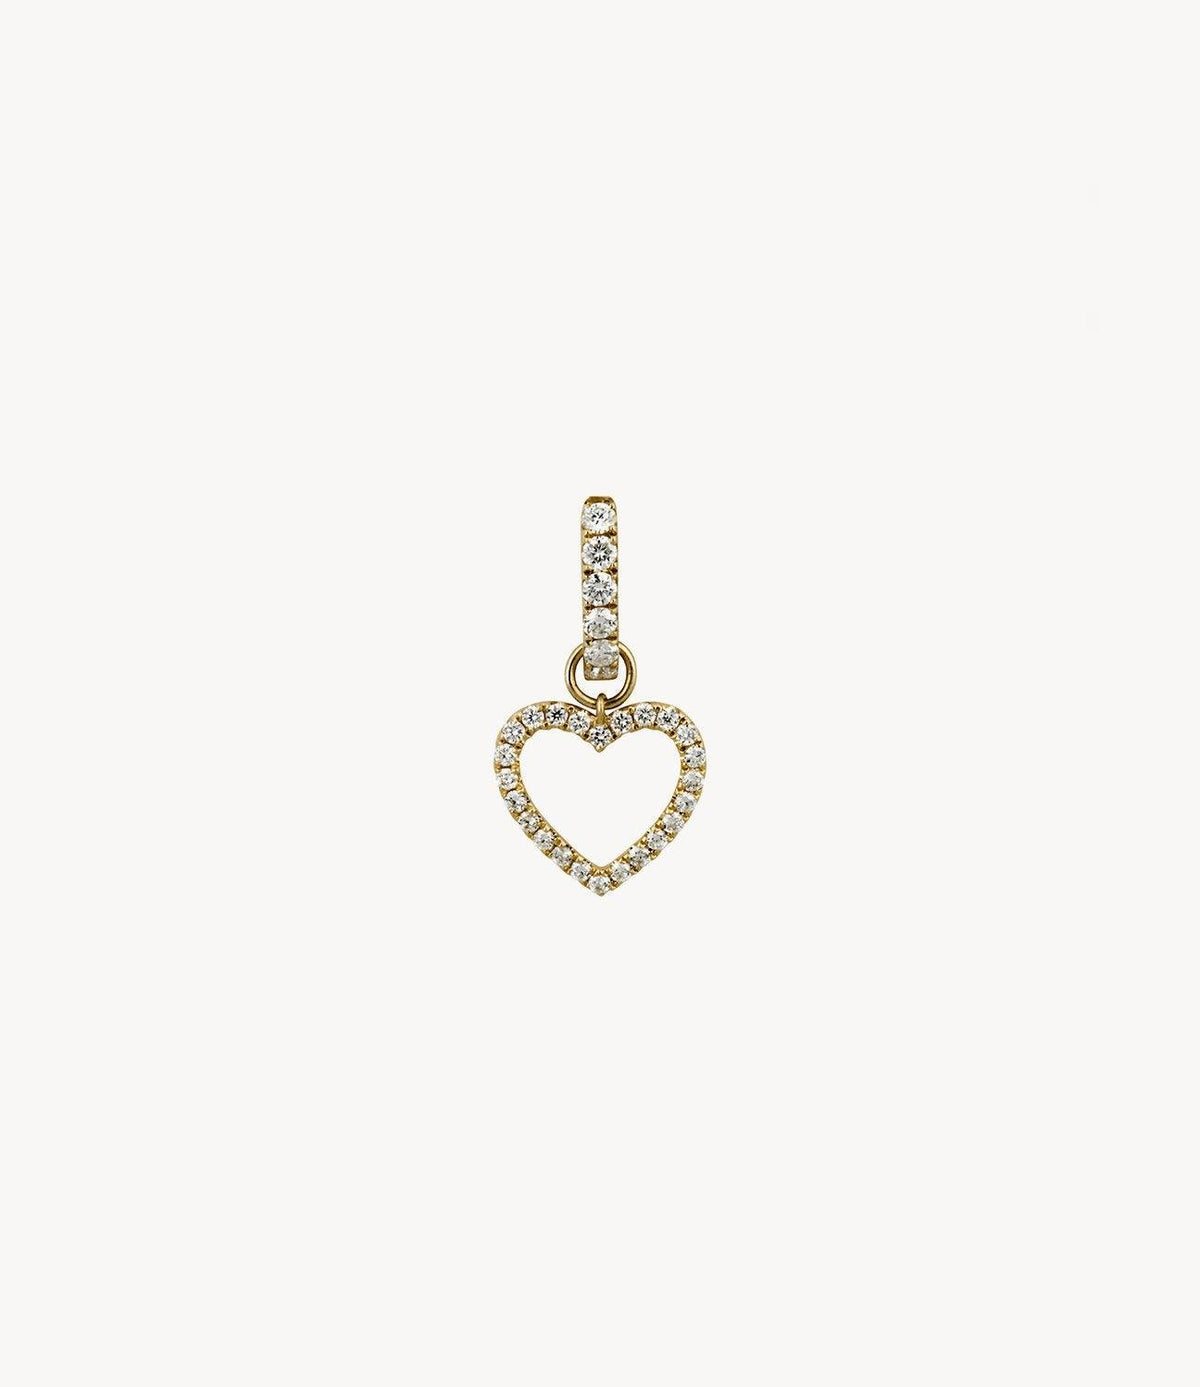 Joanie's Diamond Heart Dangly